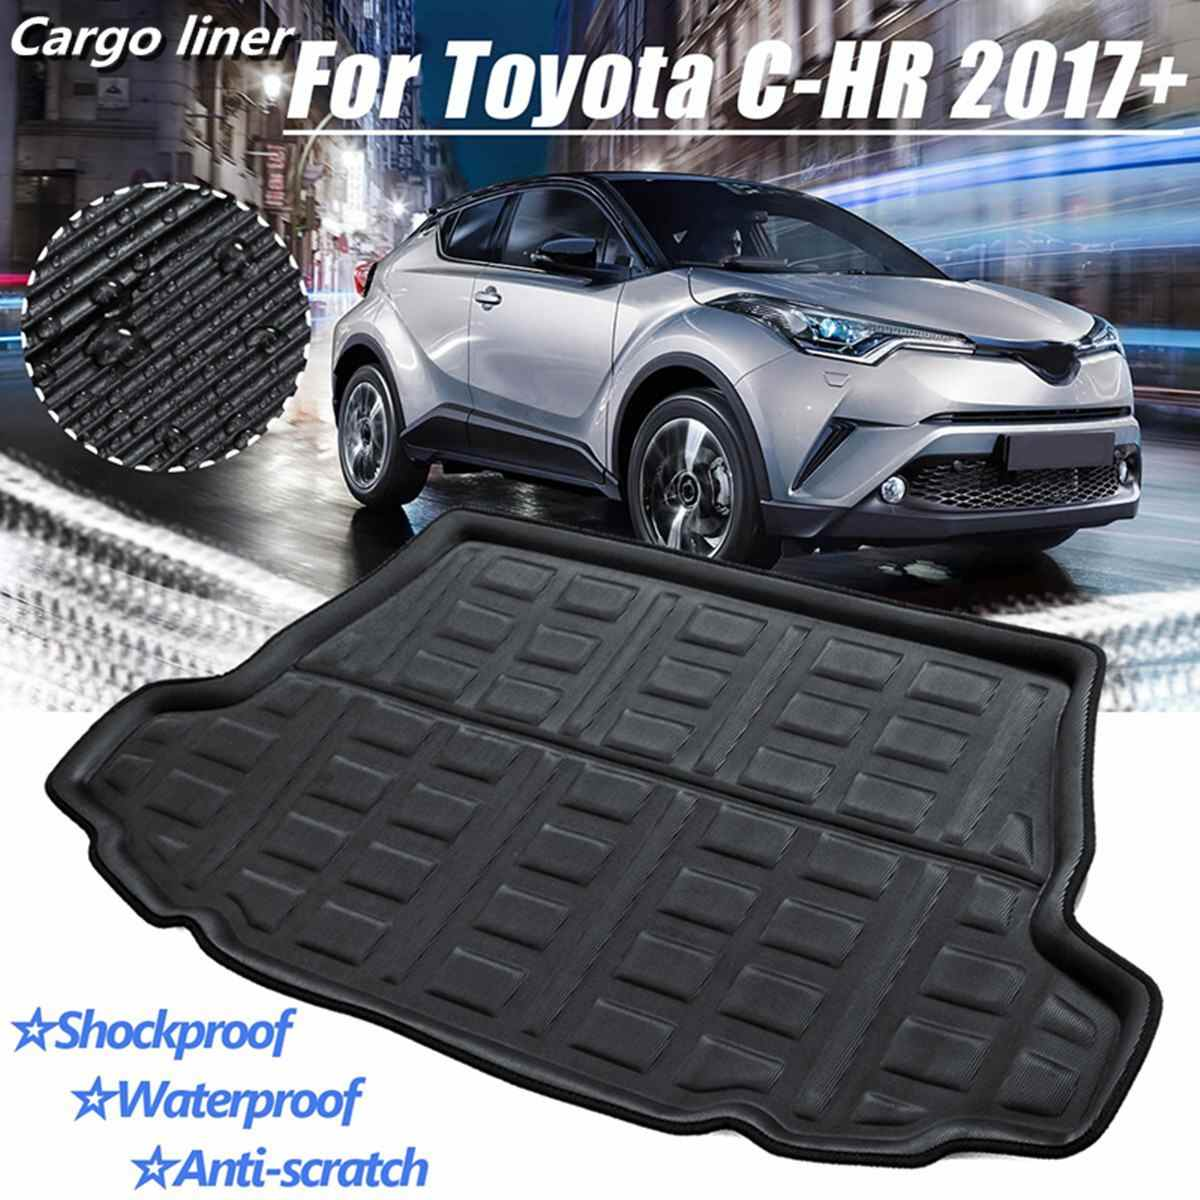 1PCS Black Inner Rubber Rear Trunk Boot Mat Carpet Car Styling Accessories For Toyota C-HR CHR 2017 2018 2019 2020+